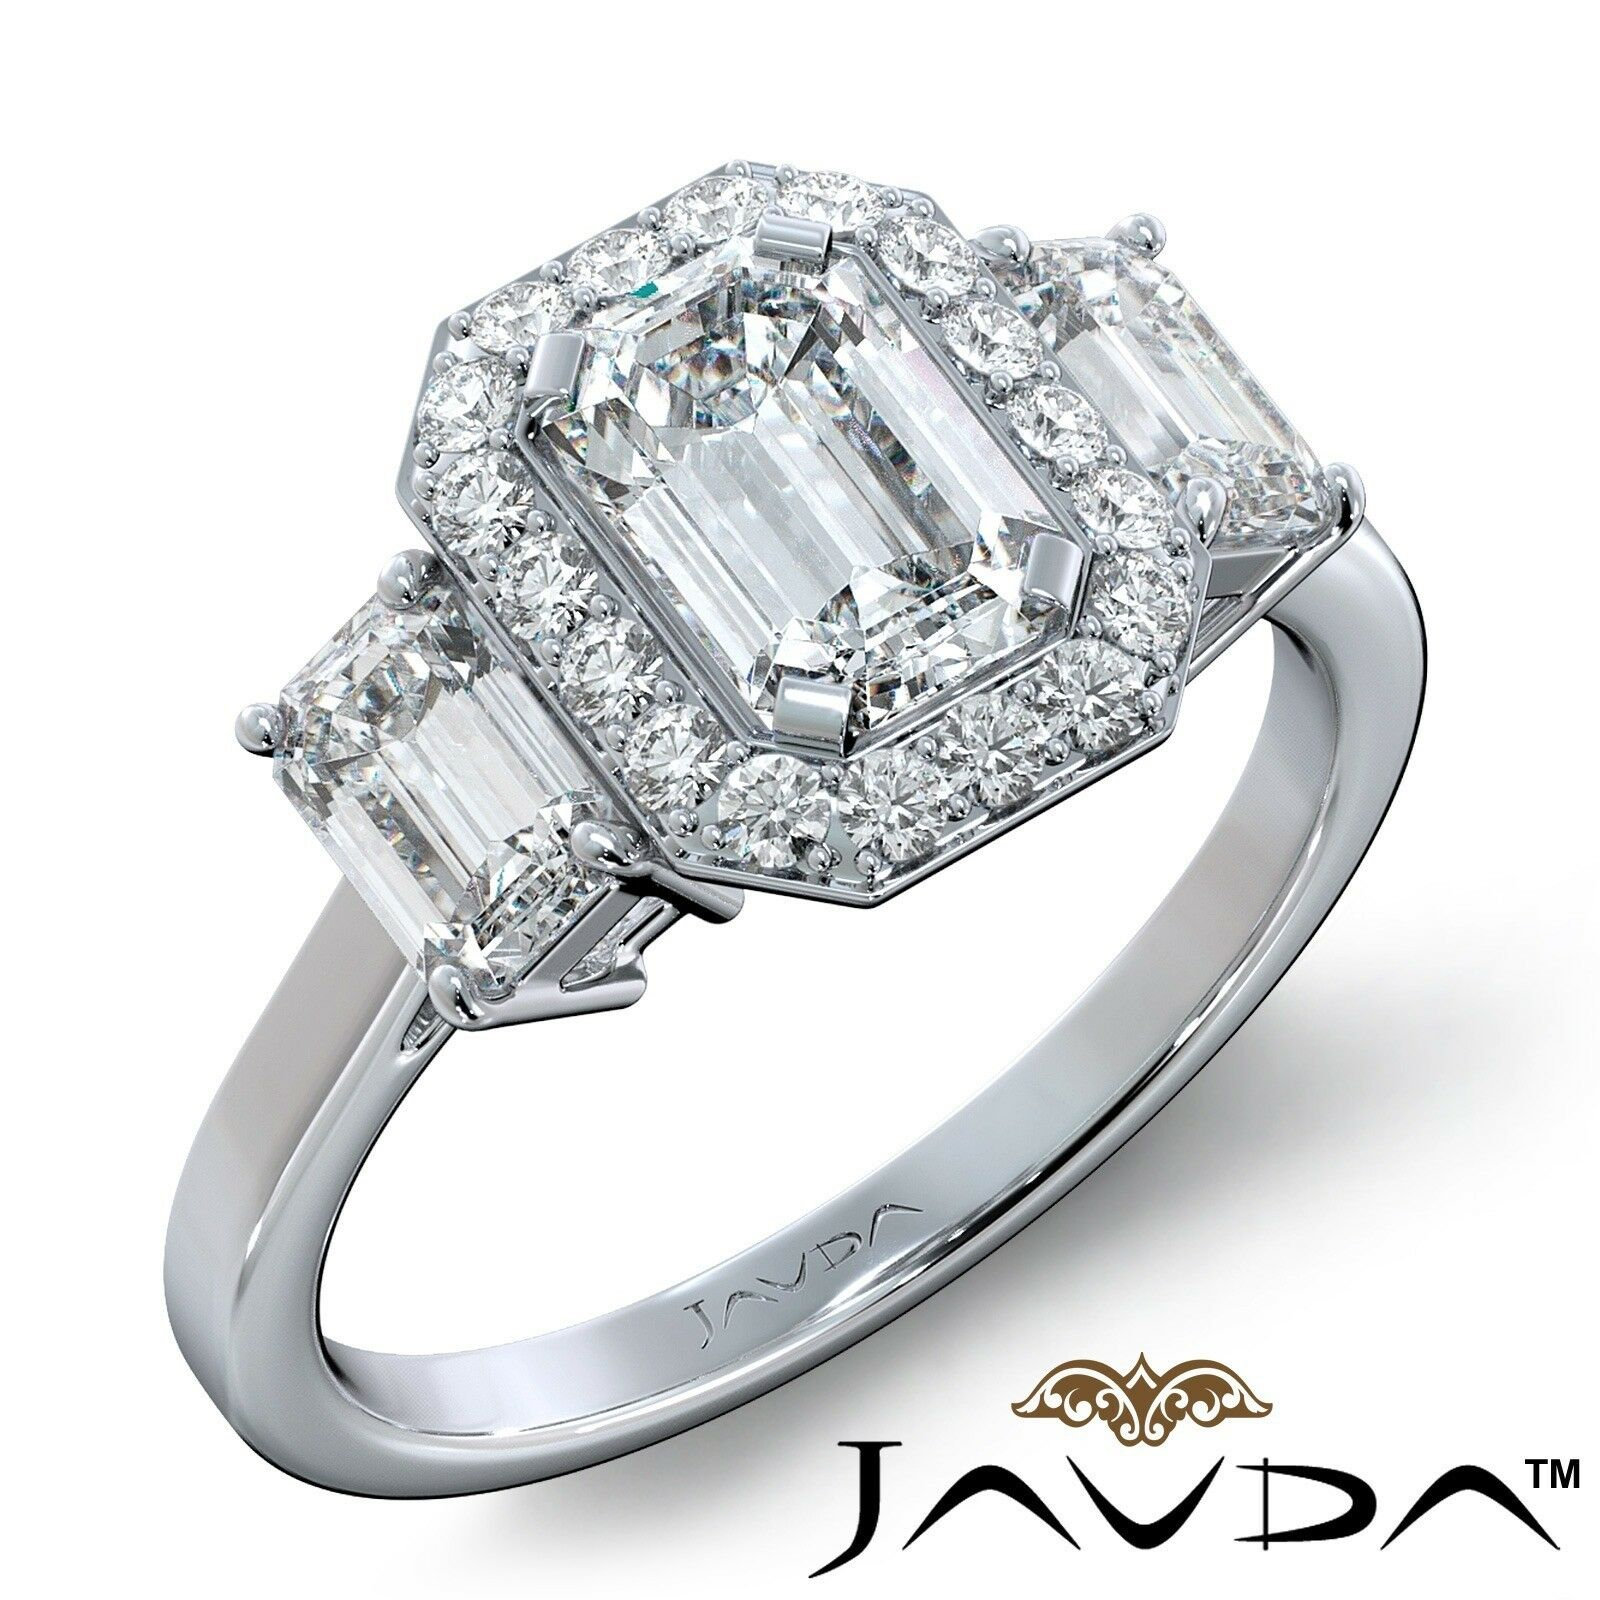 2.02ctw 3 Stone Halo Pave Emerald Diamond Engagement Ring GIA F-VVS1 White Gold